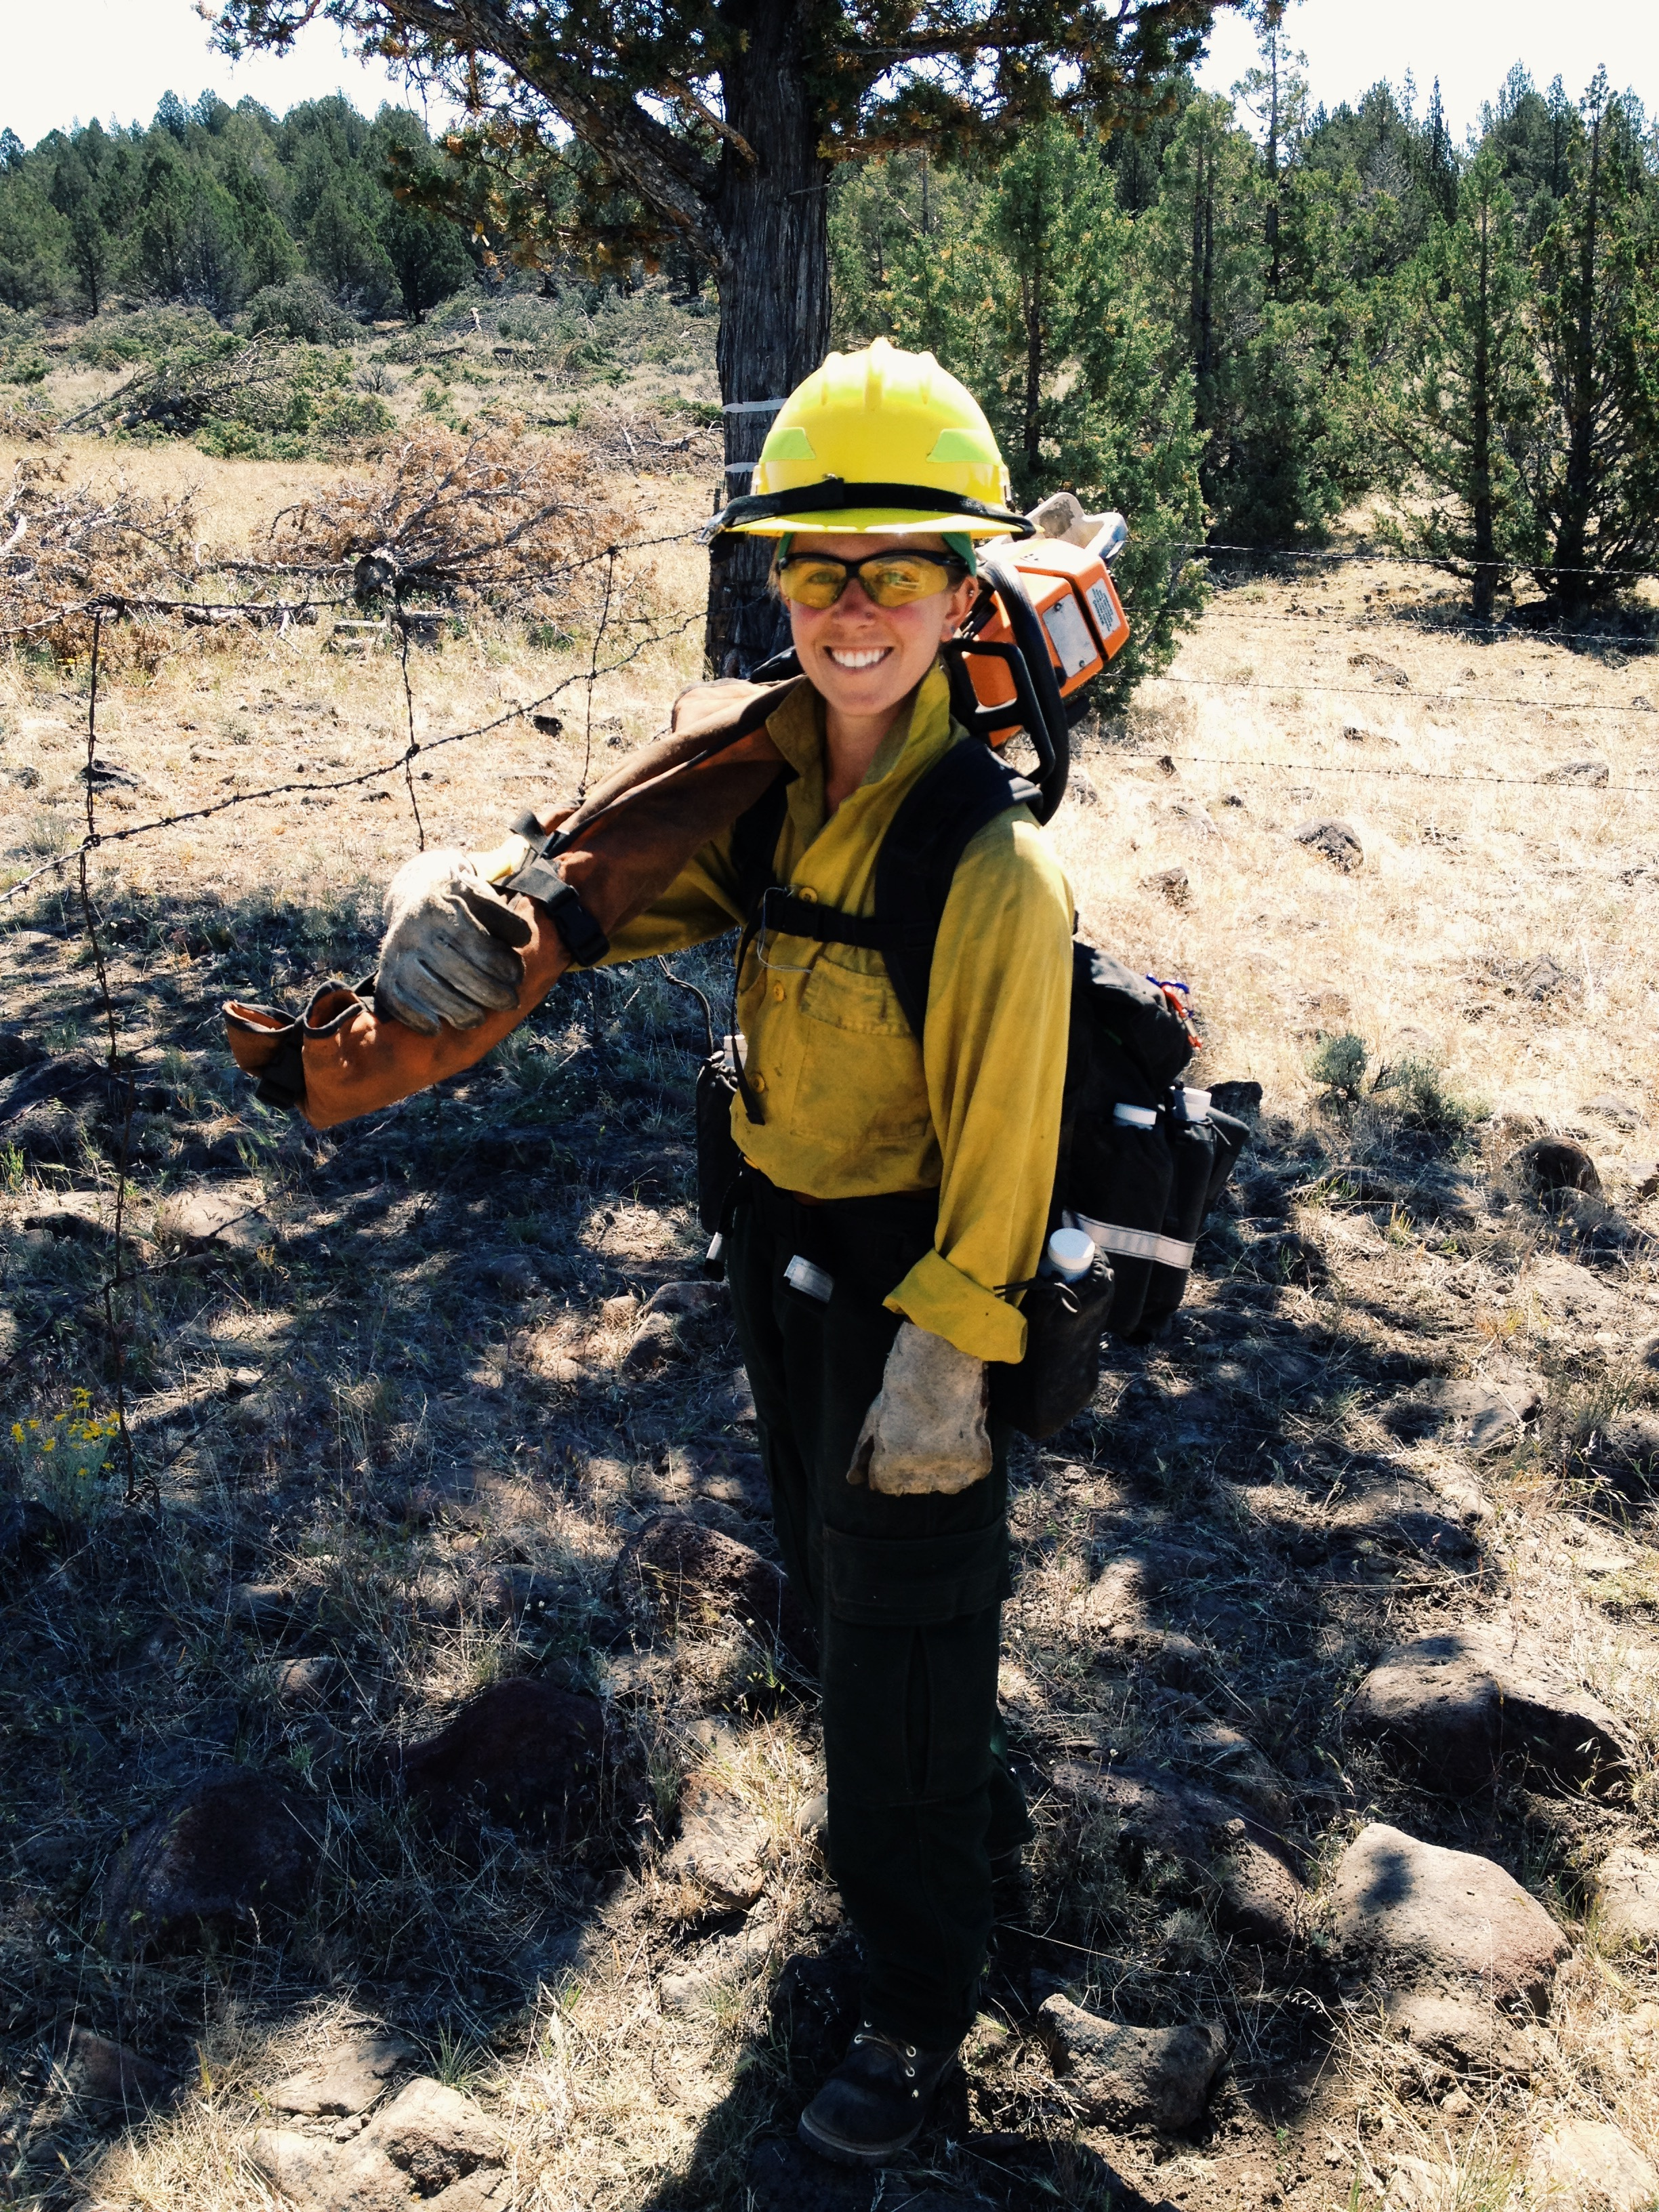 Here I am on my first day of chainsaw training about two weeks into starting my first wildland fire job in California. I was exhilarated but scared to death about trying to operate a saw. I look like a goober.